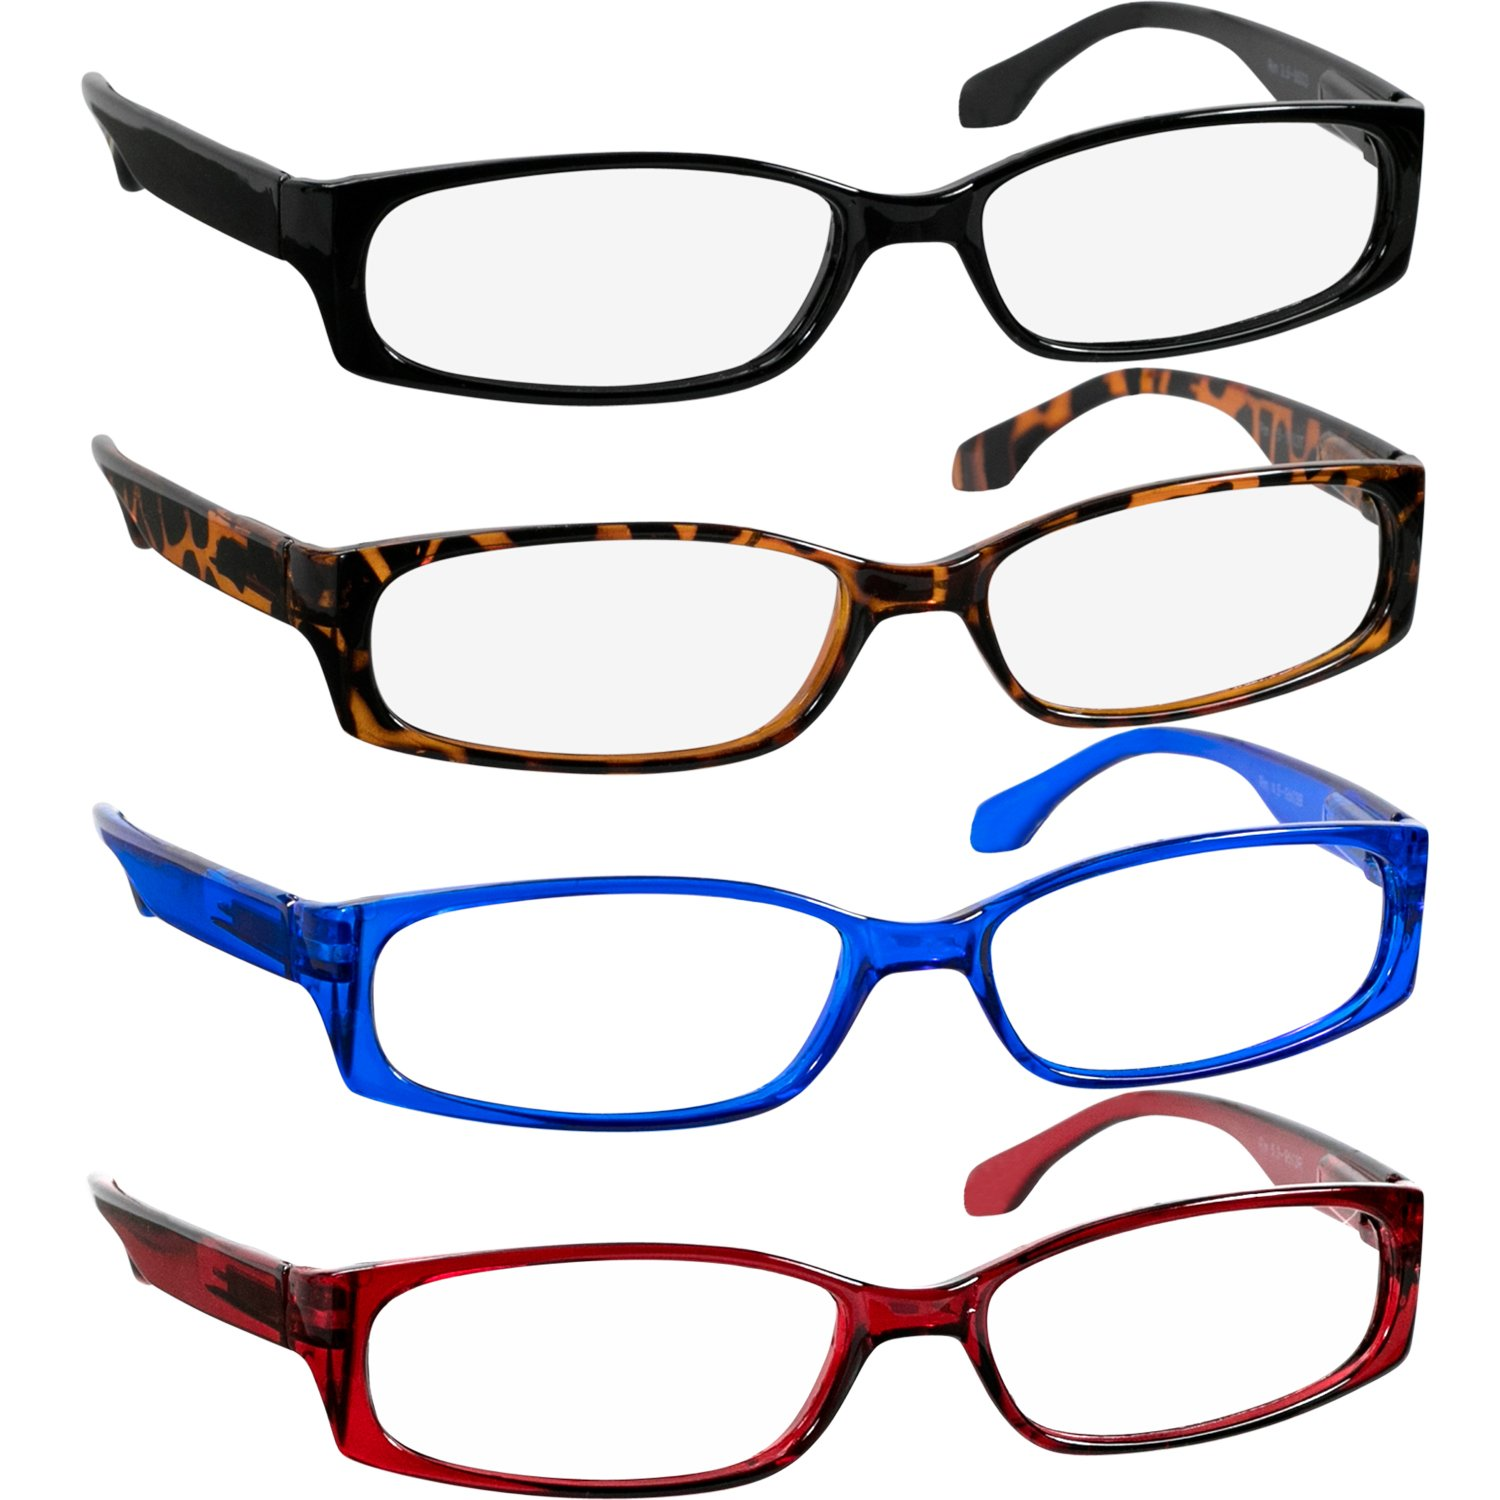 19a137bfdf110 Reading Glasses for Women and Men - Best Designer 4 Pack of Readers Spring  Hinge product